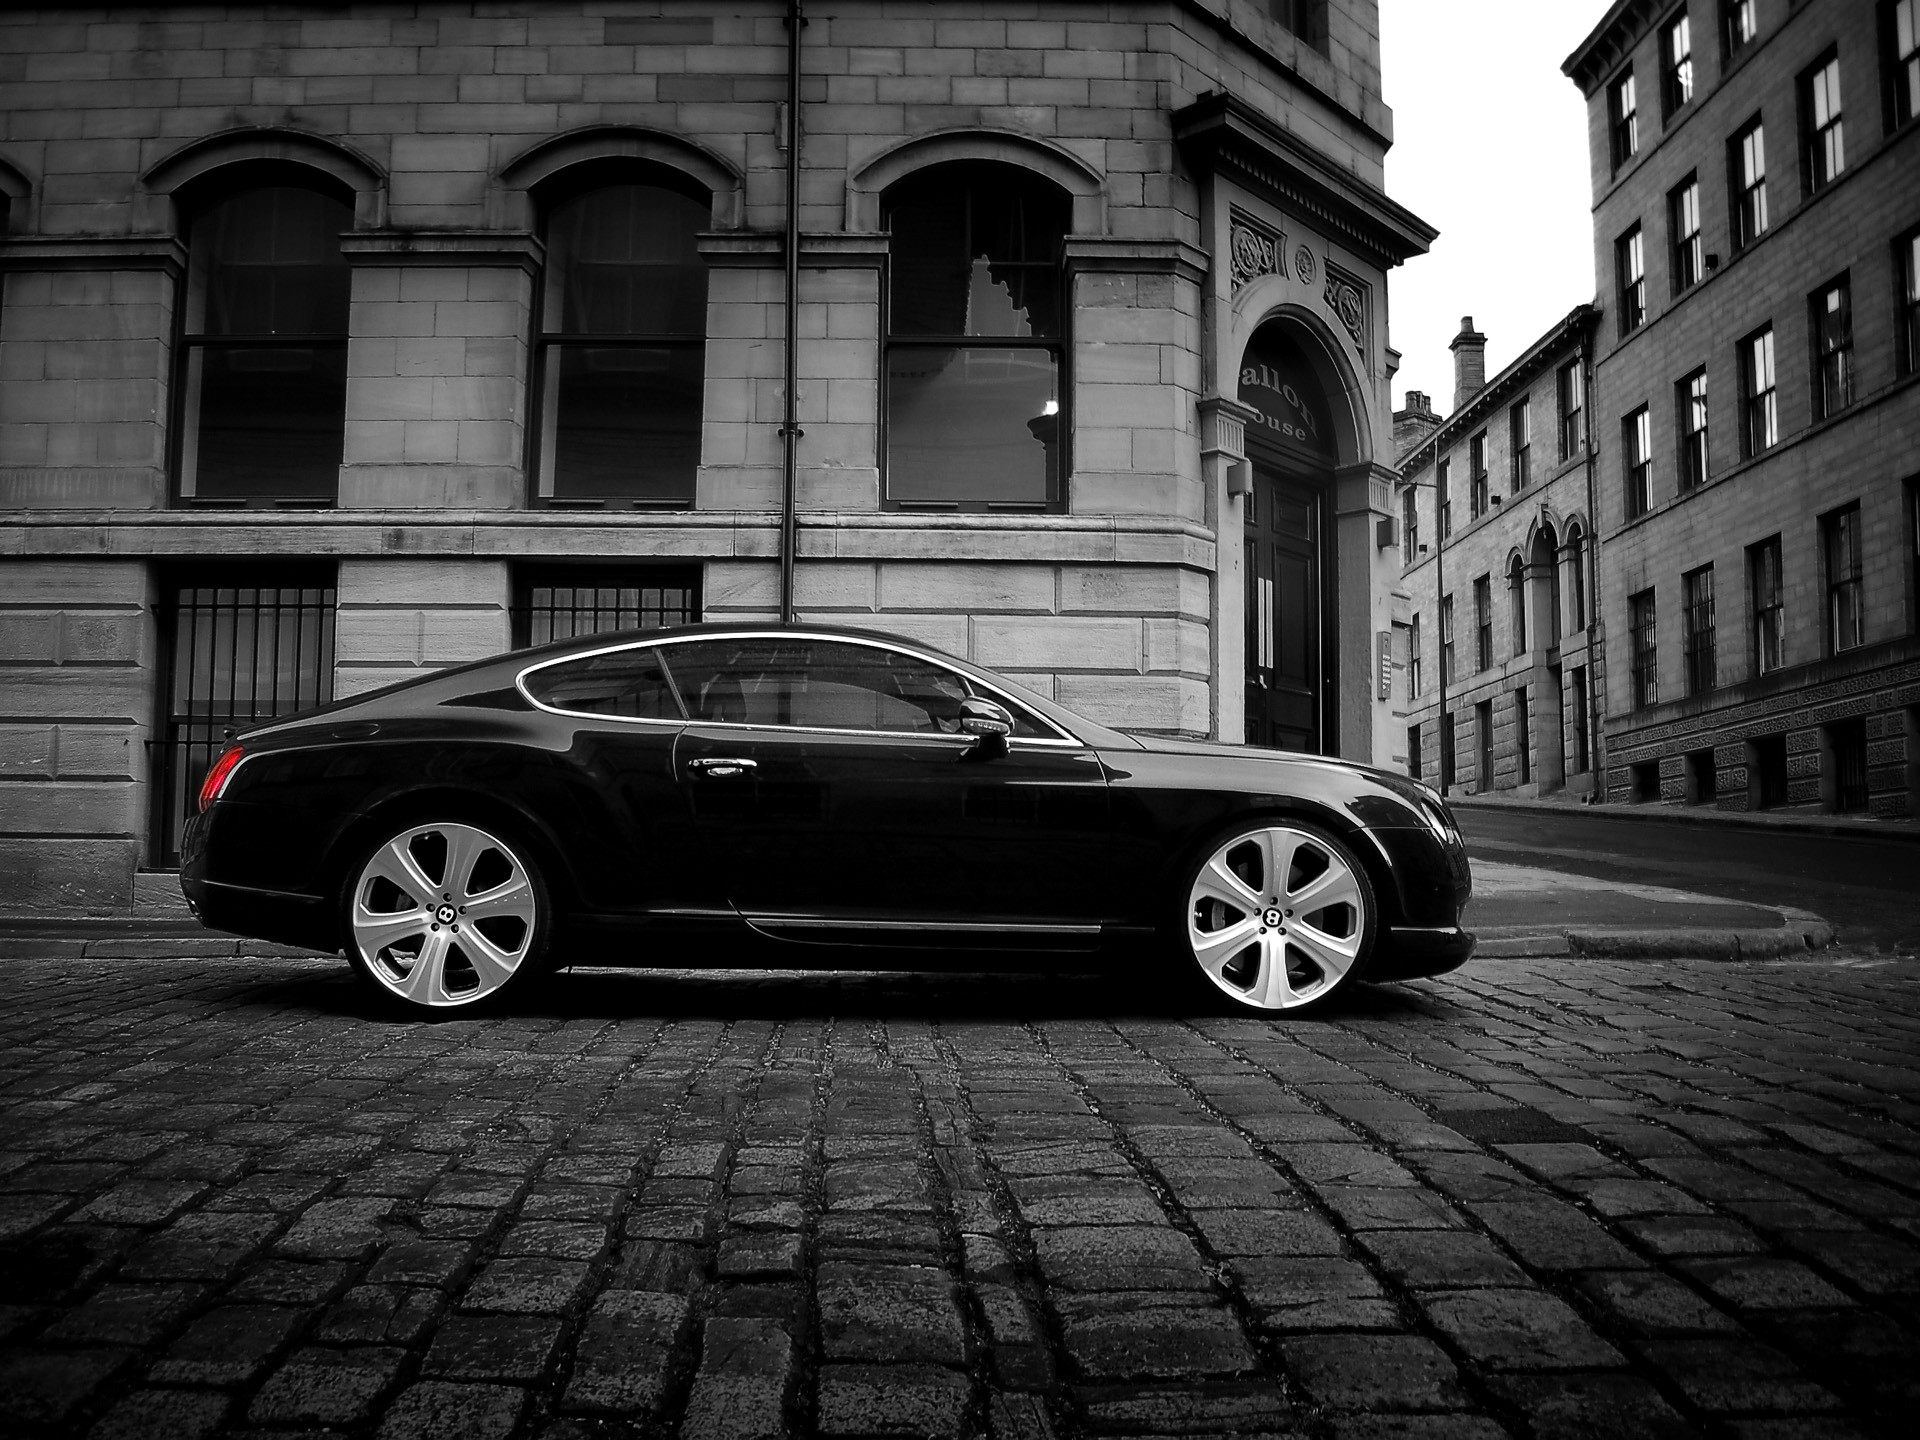 1920x1440 - Bentley Continental GT Wallpapers 22